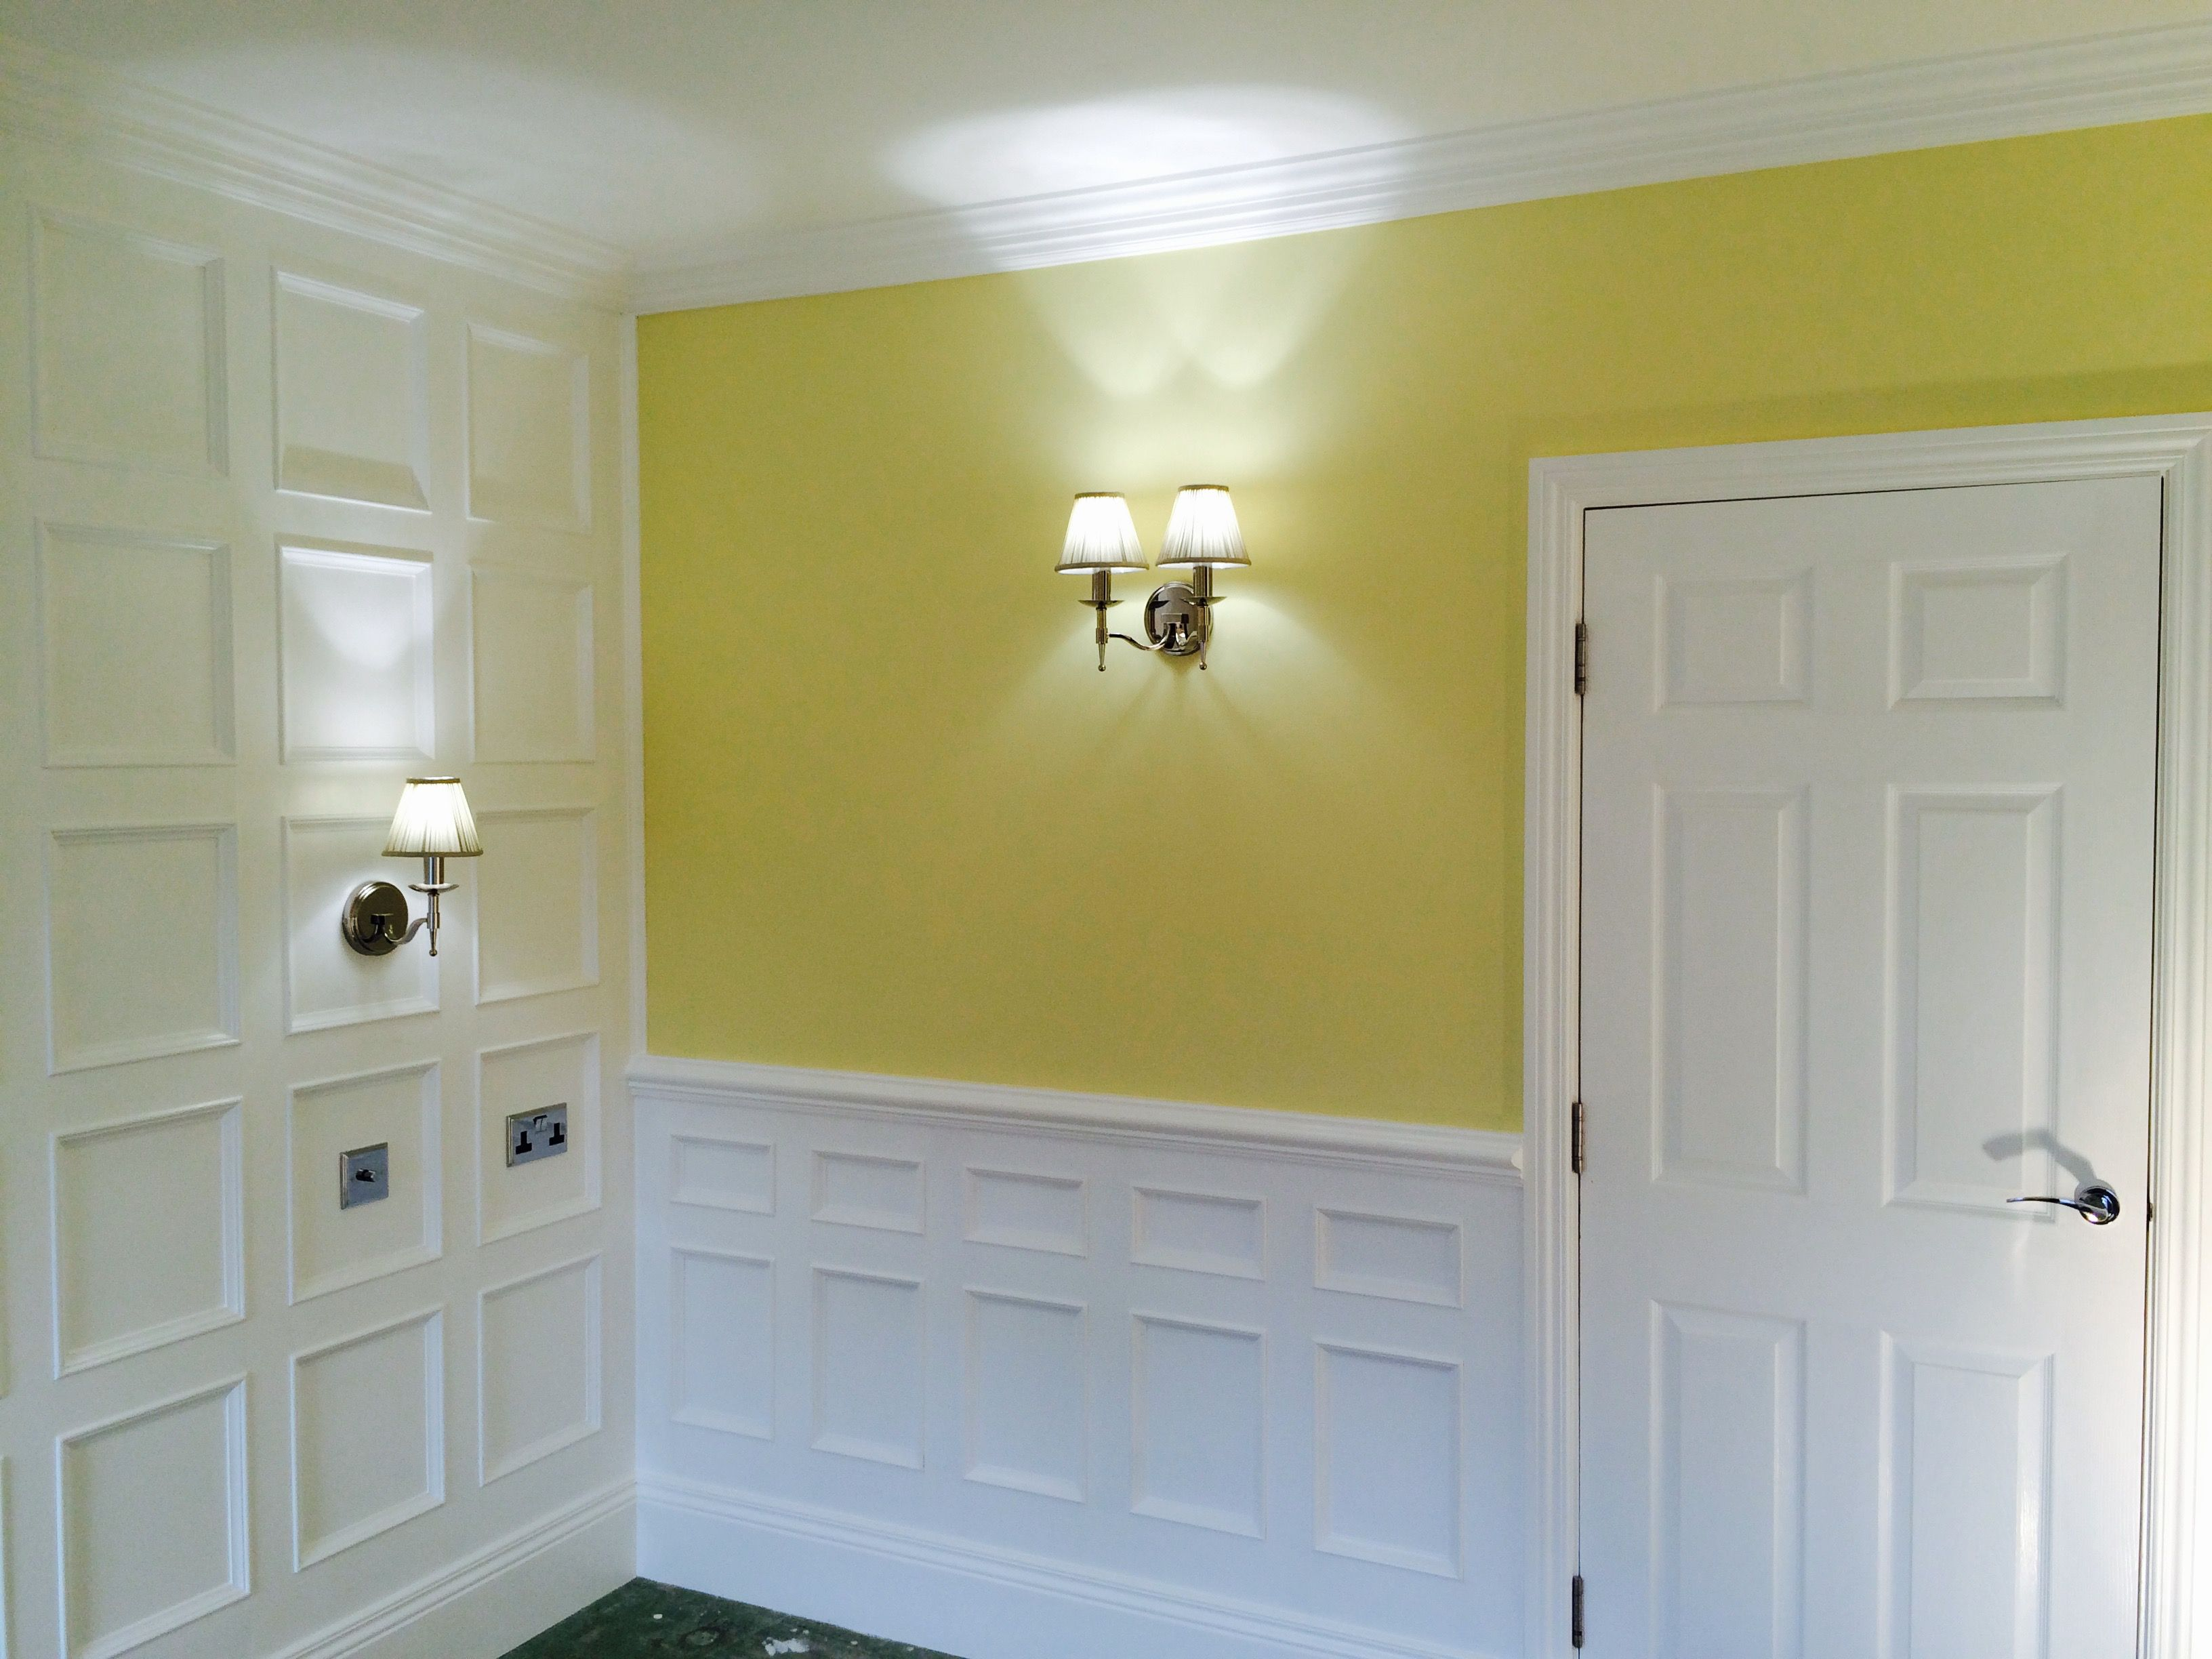 Beaded wall panelling around room to match feature wall Looks classy ...